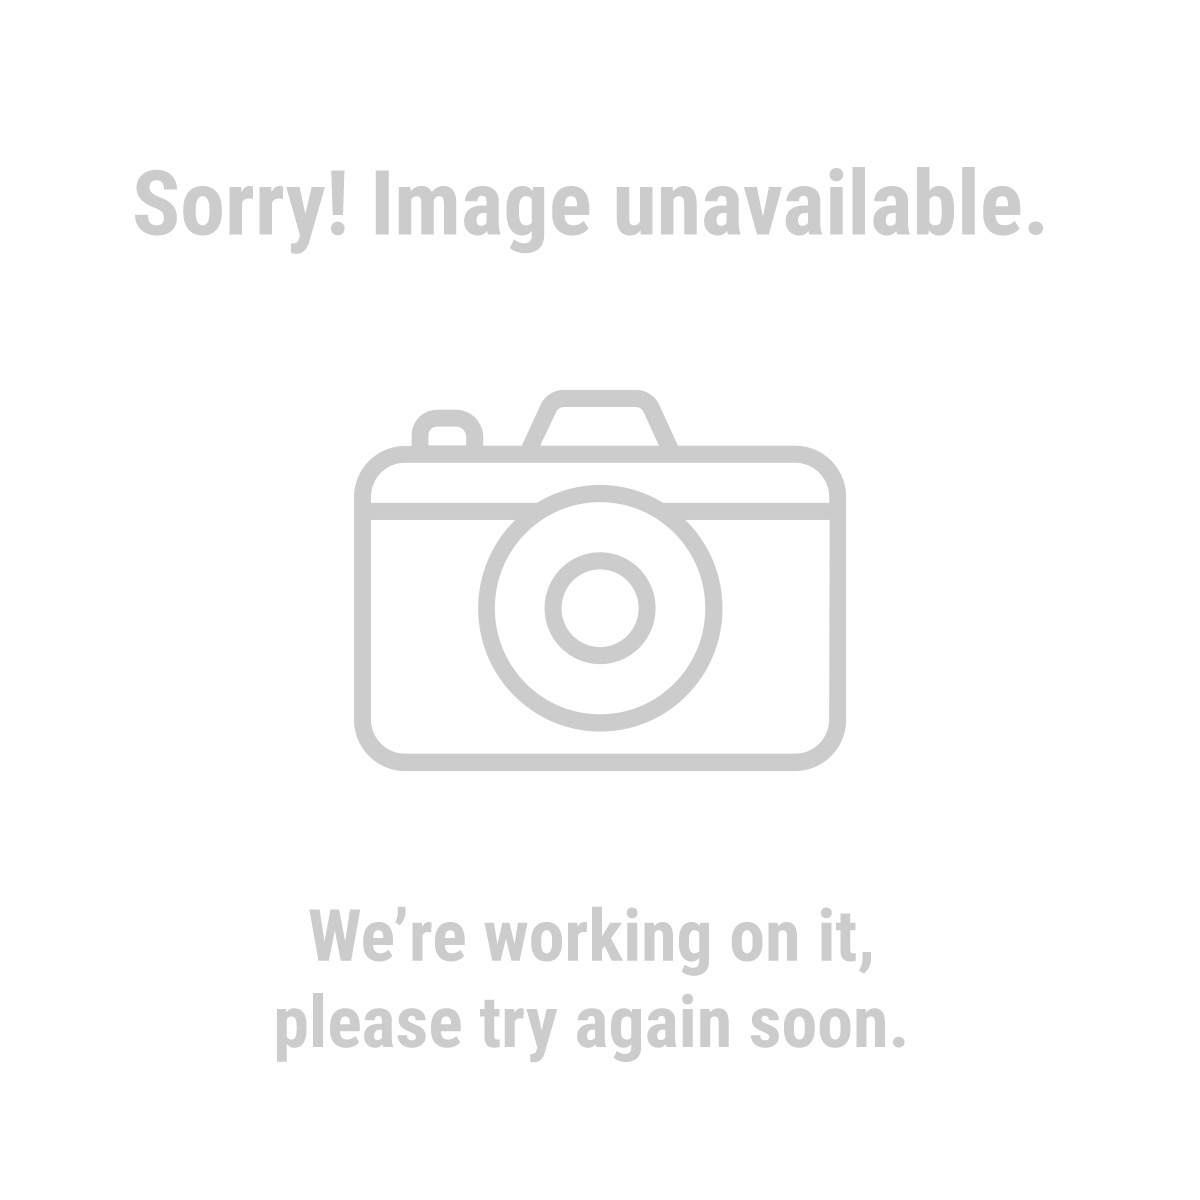 Pittsburgh Professional 94011 3 Piece Thumbwheel Ratchet Set